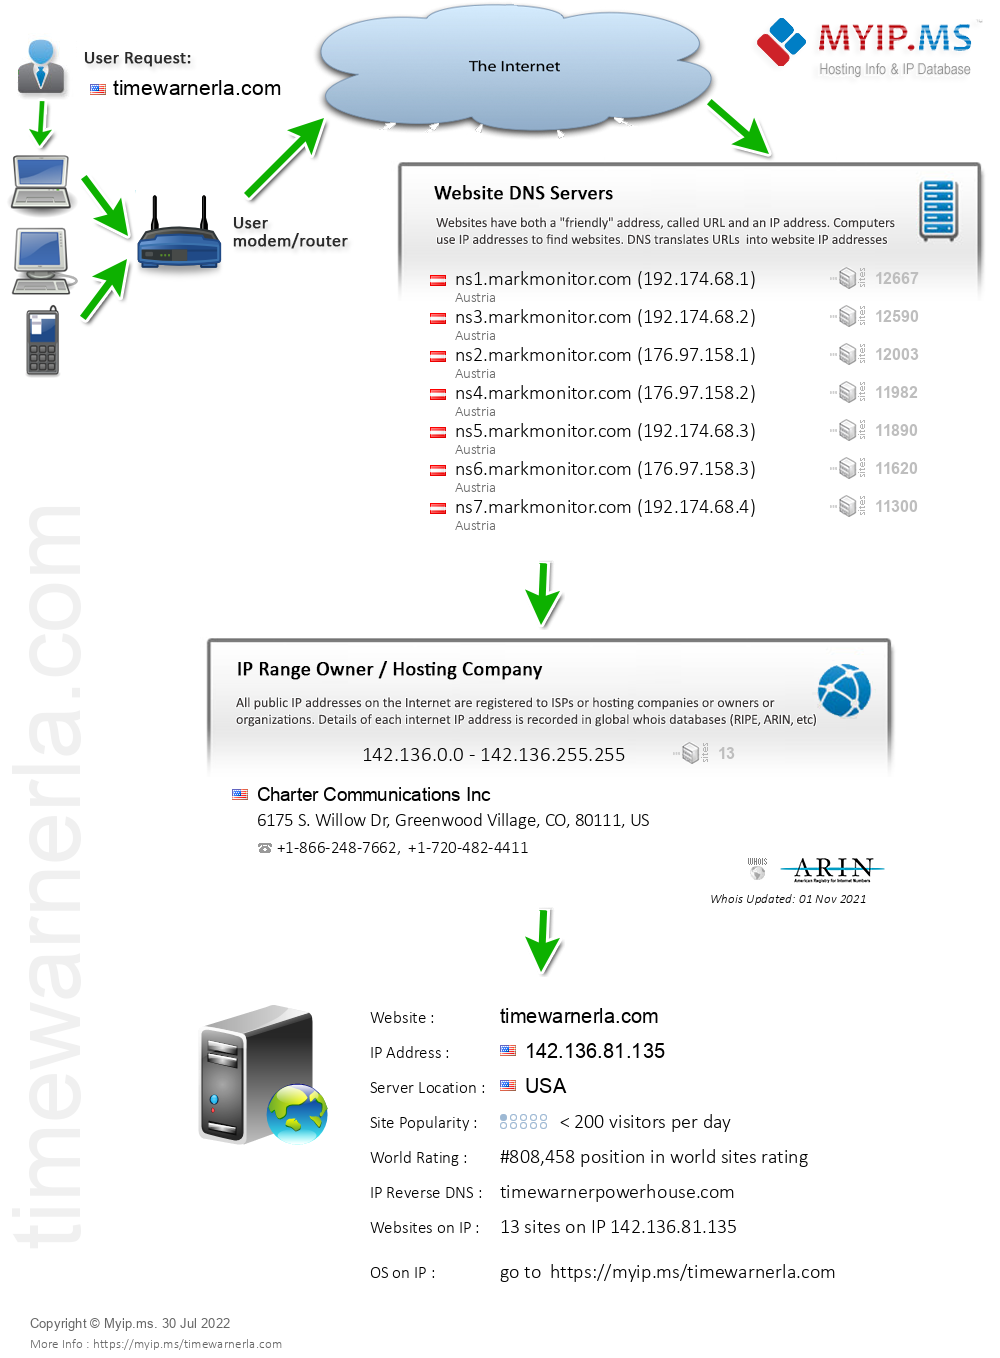 Timewarnerla.com - Website Hosting Visual IP Diagram